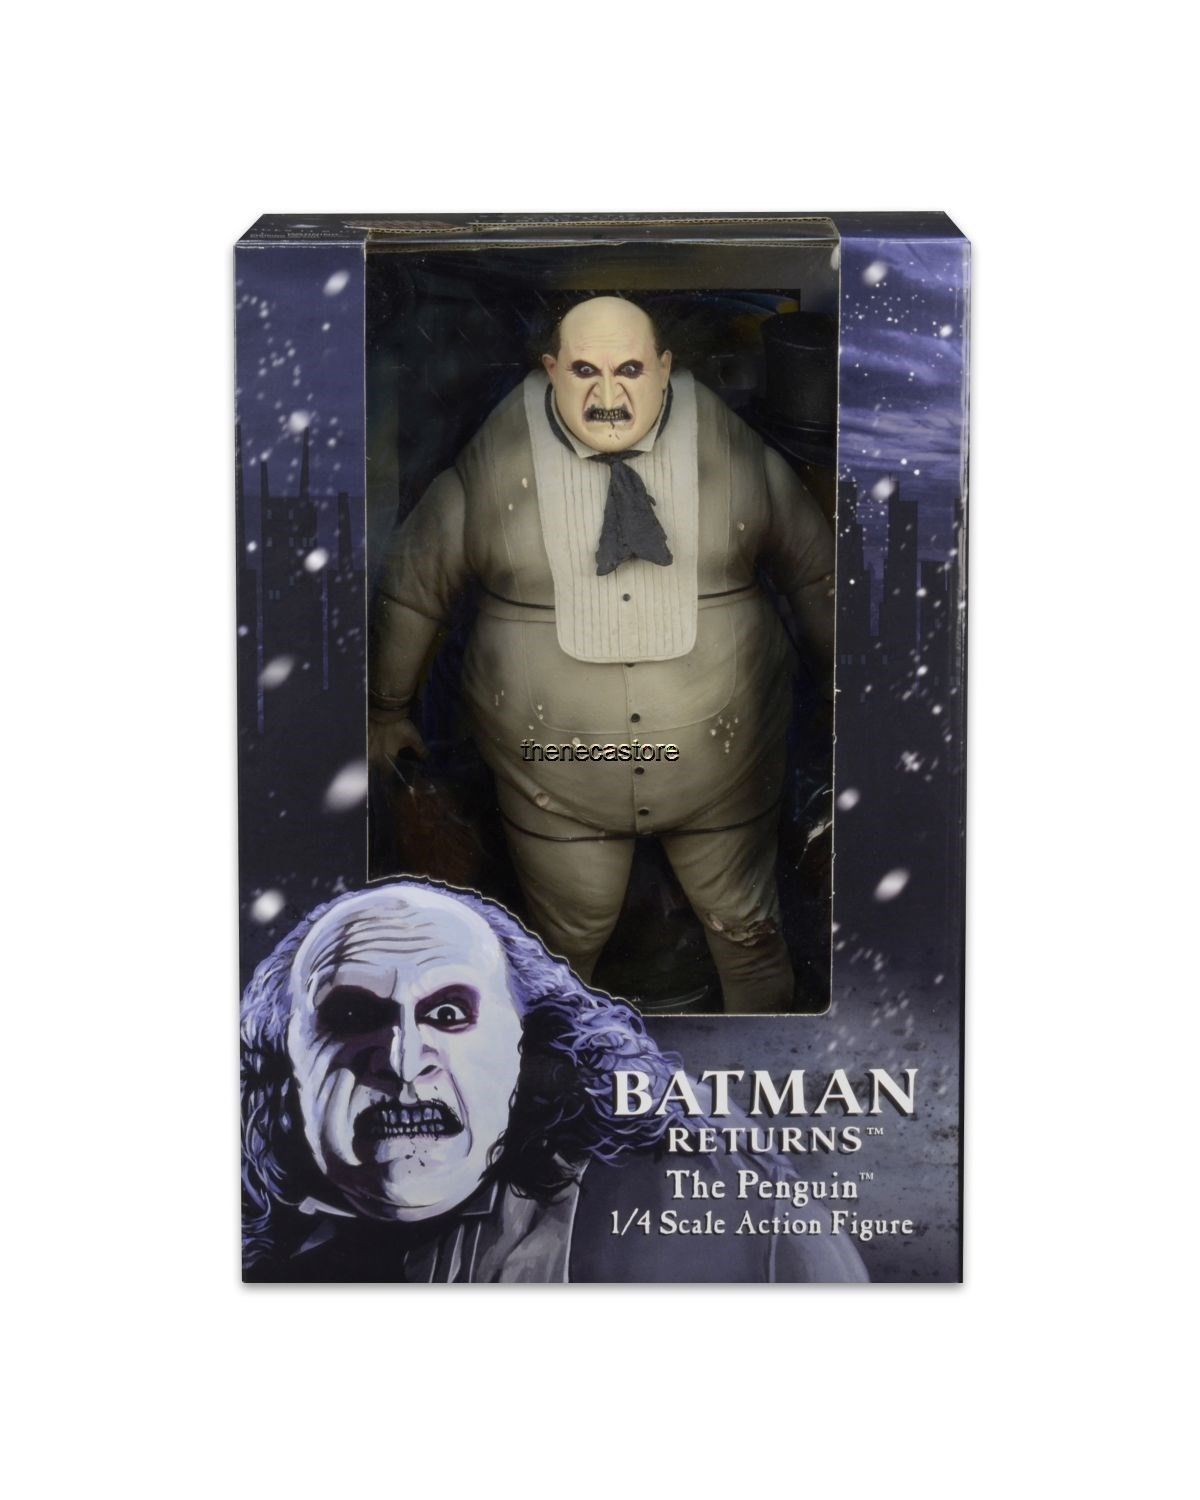 NECA Batman Returns Penguin 1/4 Scale Action Figure Listed On eBay